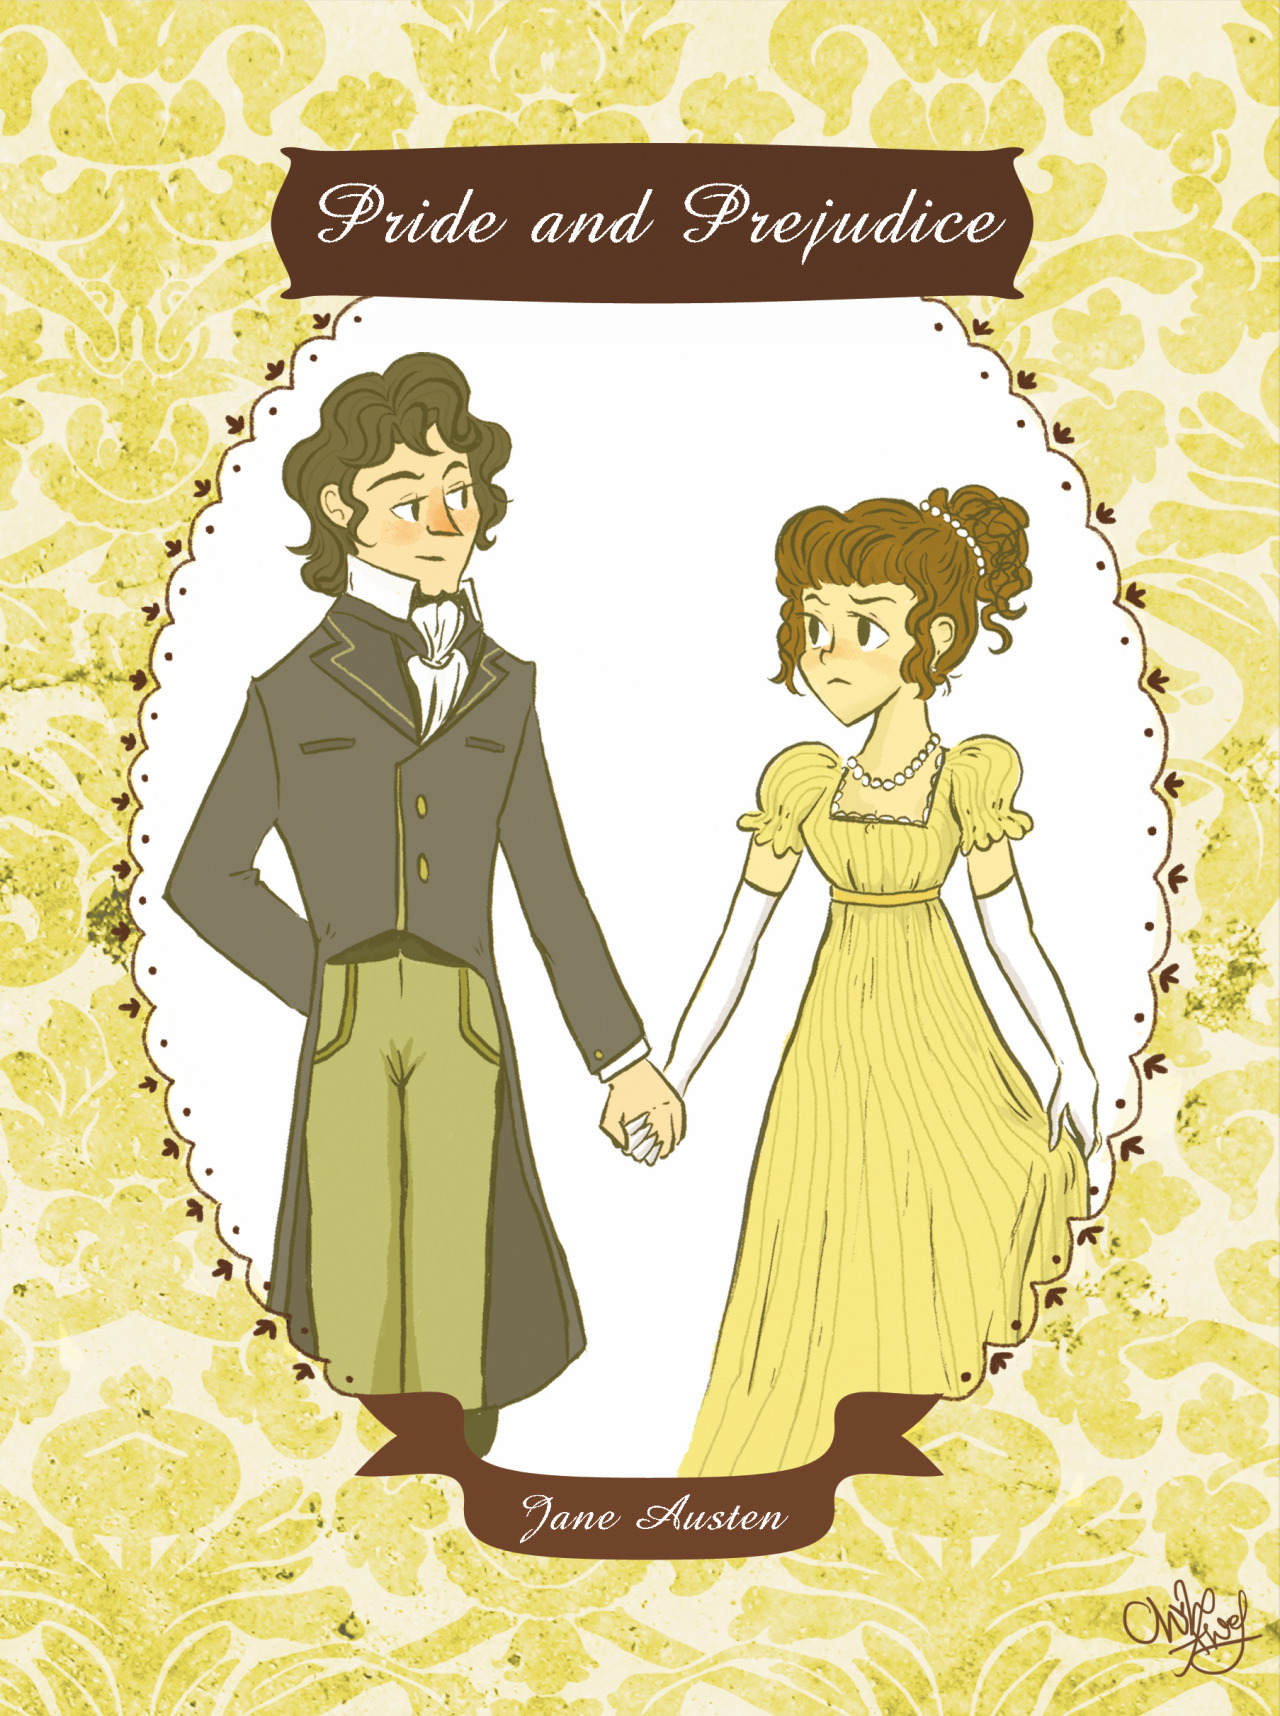 The Yellow Wallpaper Important Quotes My Art Fanart Pride And Prejudice Emma Jane Austen